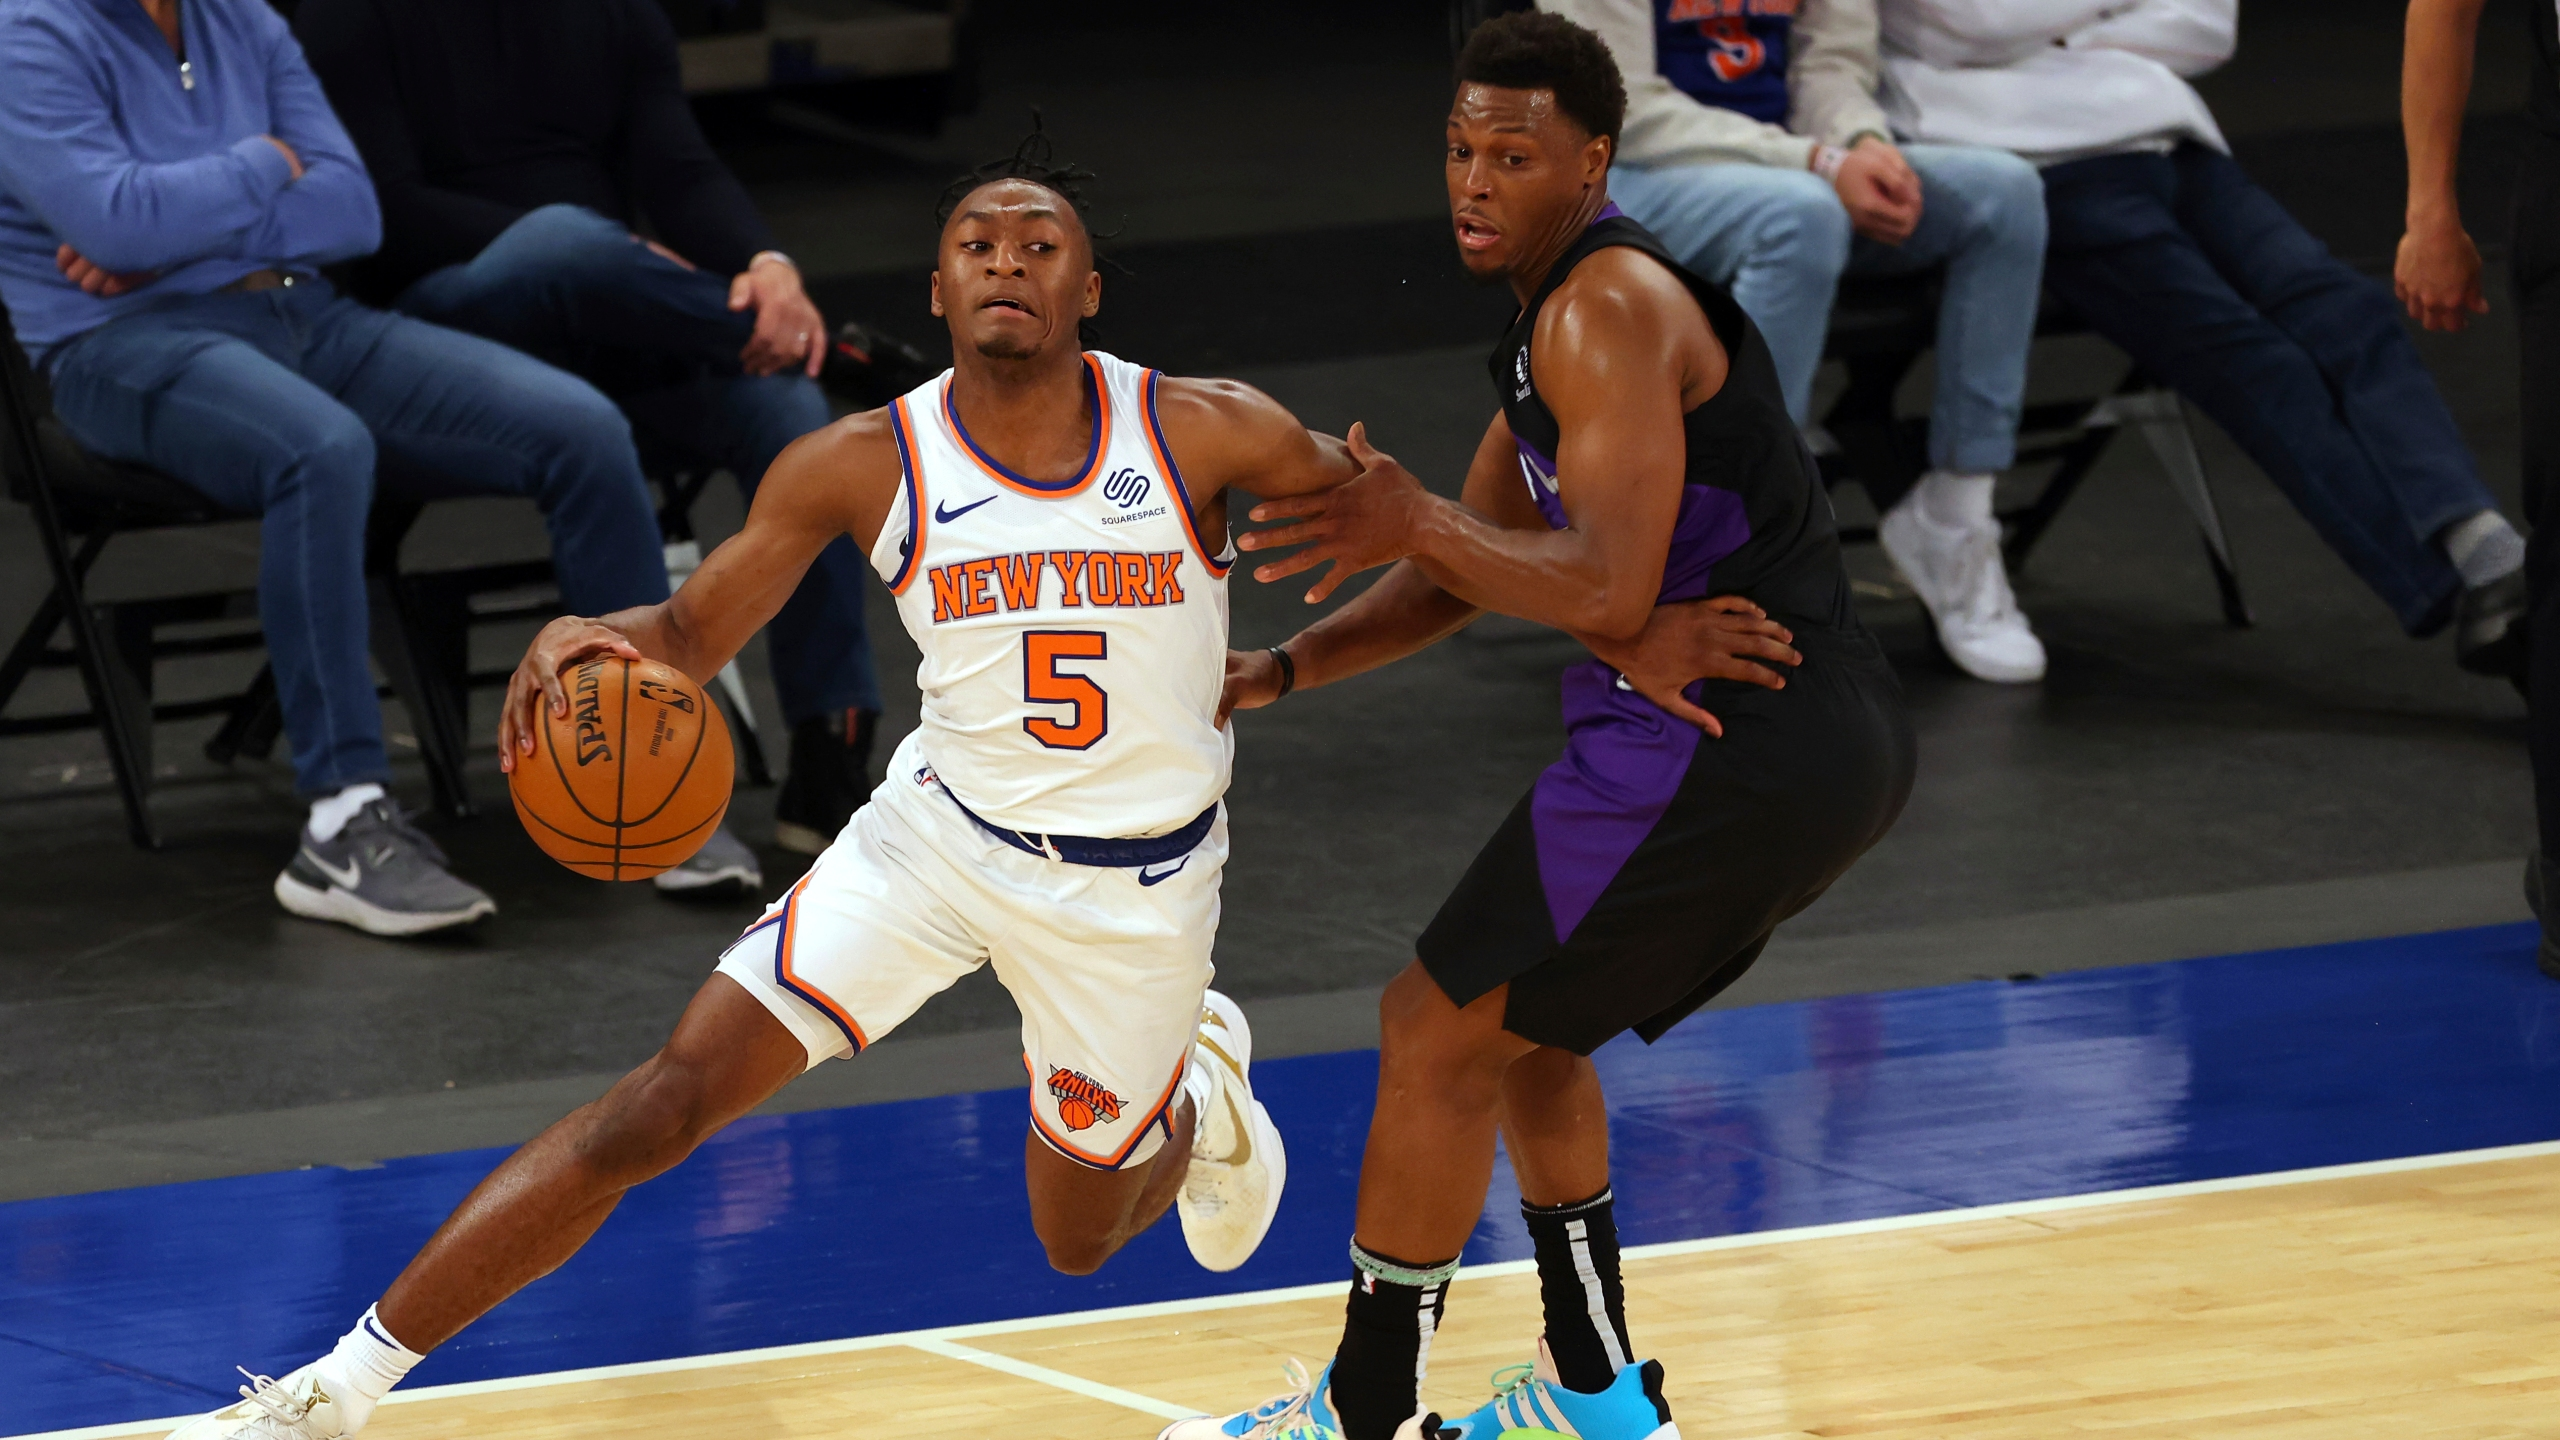 New York Knicks' Immanuel Quickley (5) attempts to get past Toronto Raptors' Kyle Lowry, right, who defends during an NBA basketball game at Madison Square Garden, Sunday, April 11, 2021, in New York. (Rich Schultz/Pool Photo via AP)